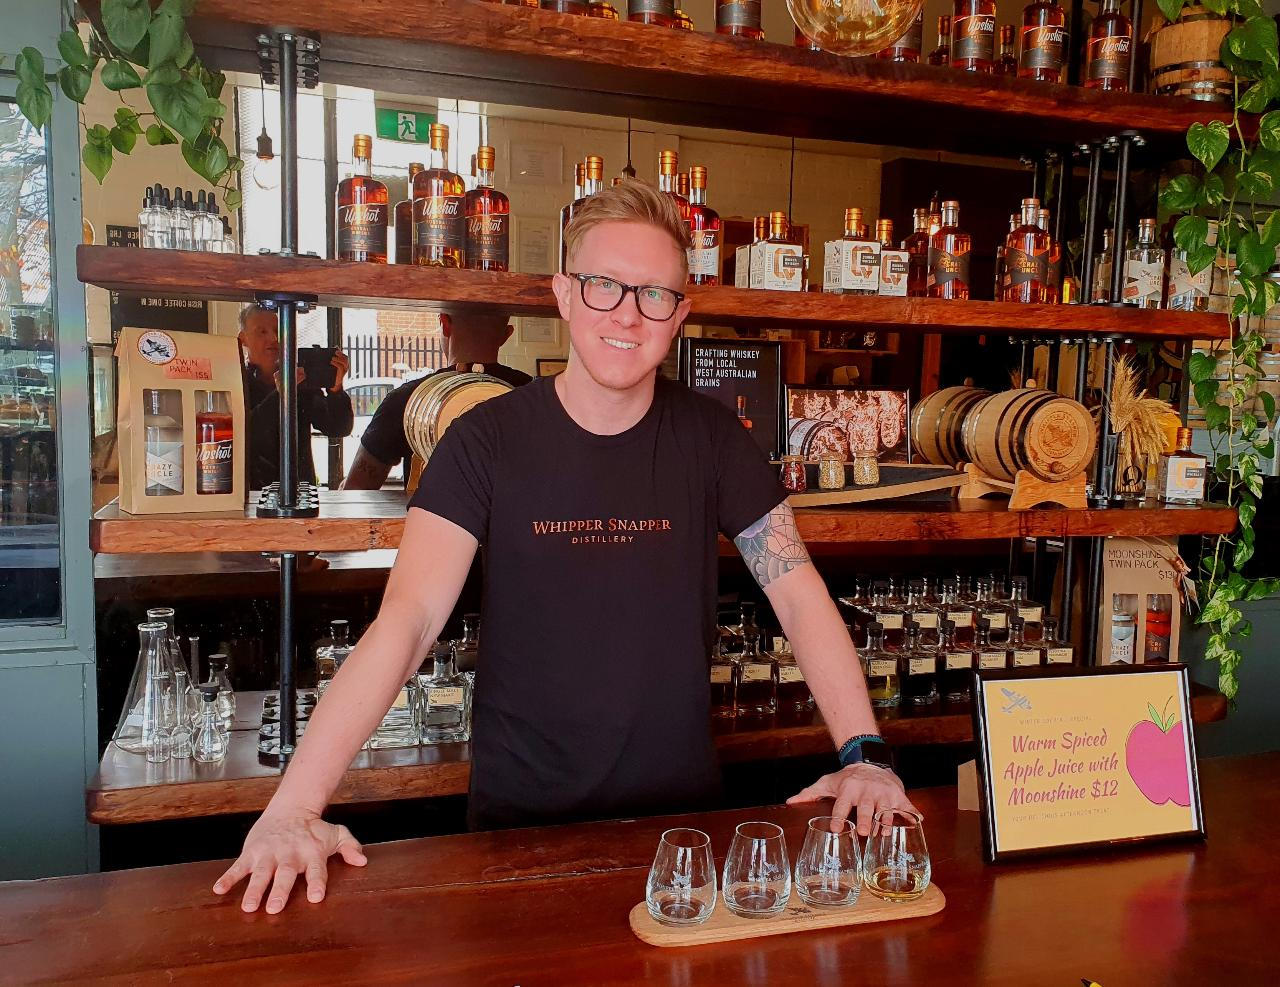 Whiskey and Wheels - Guided bike tour of Perth foreshores and a Whiskey Distillery